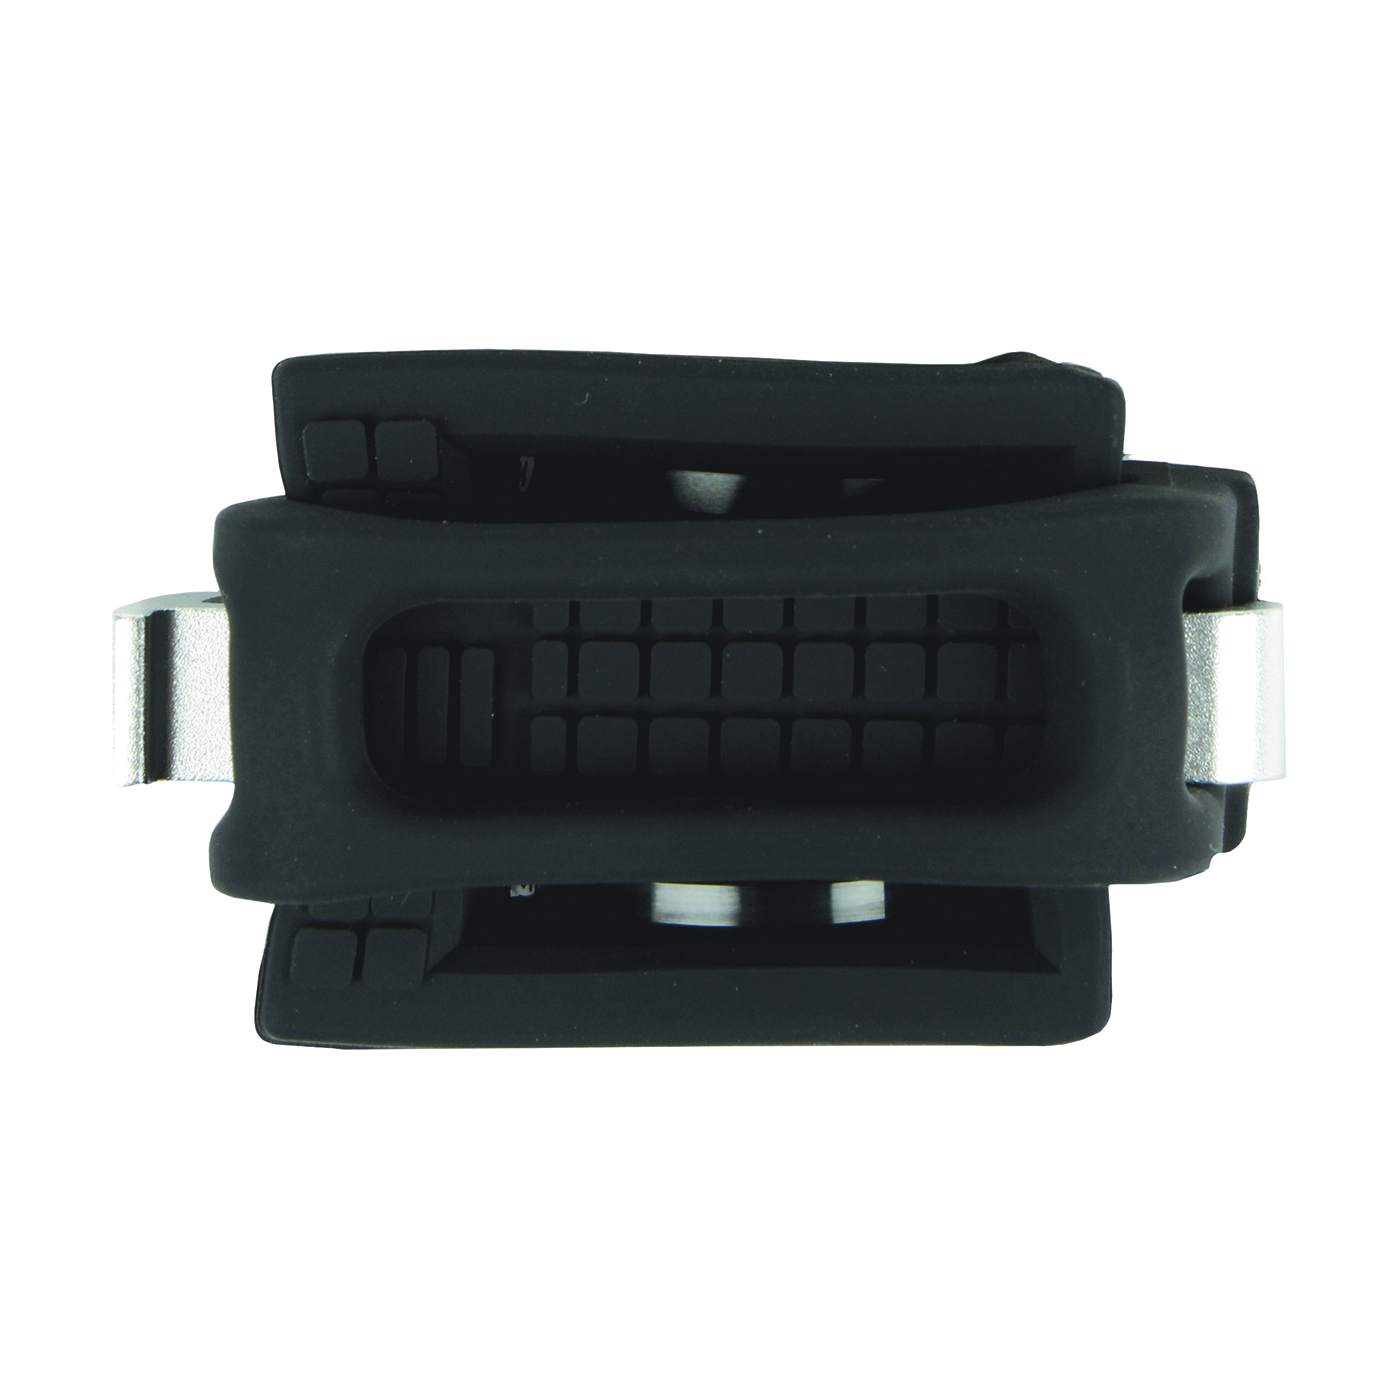 Picture of Nite Ize HDB-01-R3 Smart Phone Bar Mount, Silicone, Black, Vertical Bar Mounting